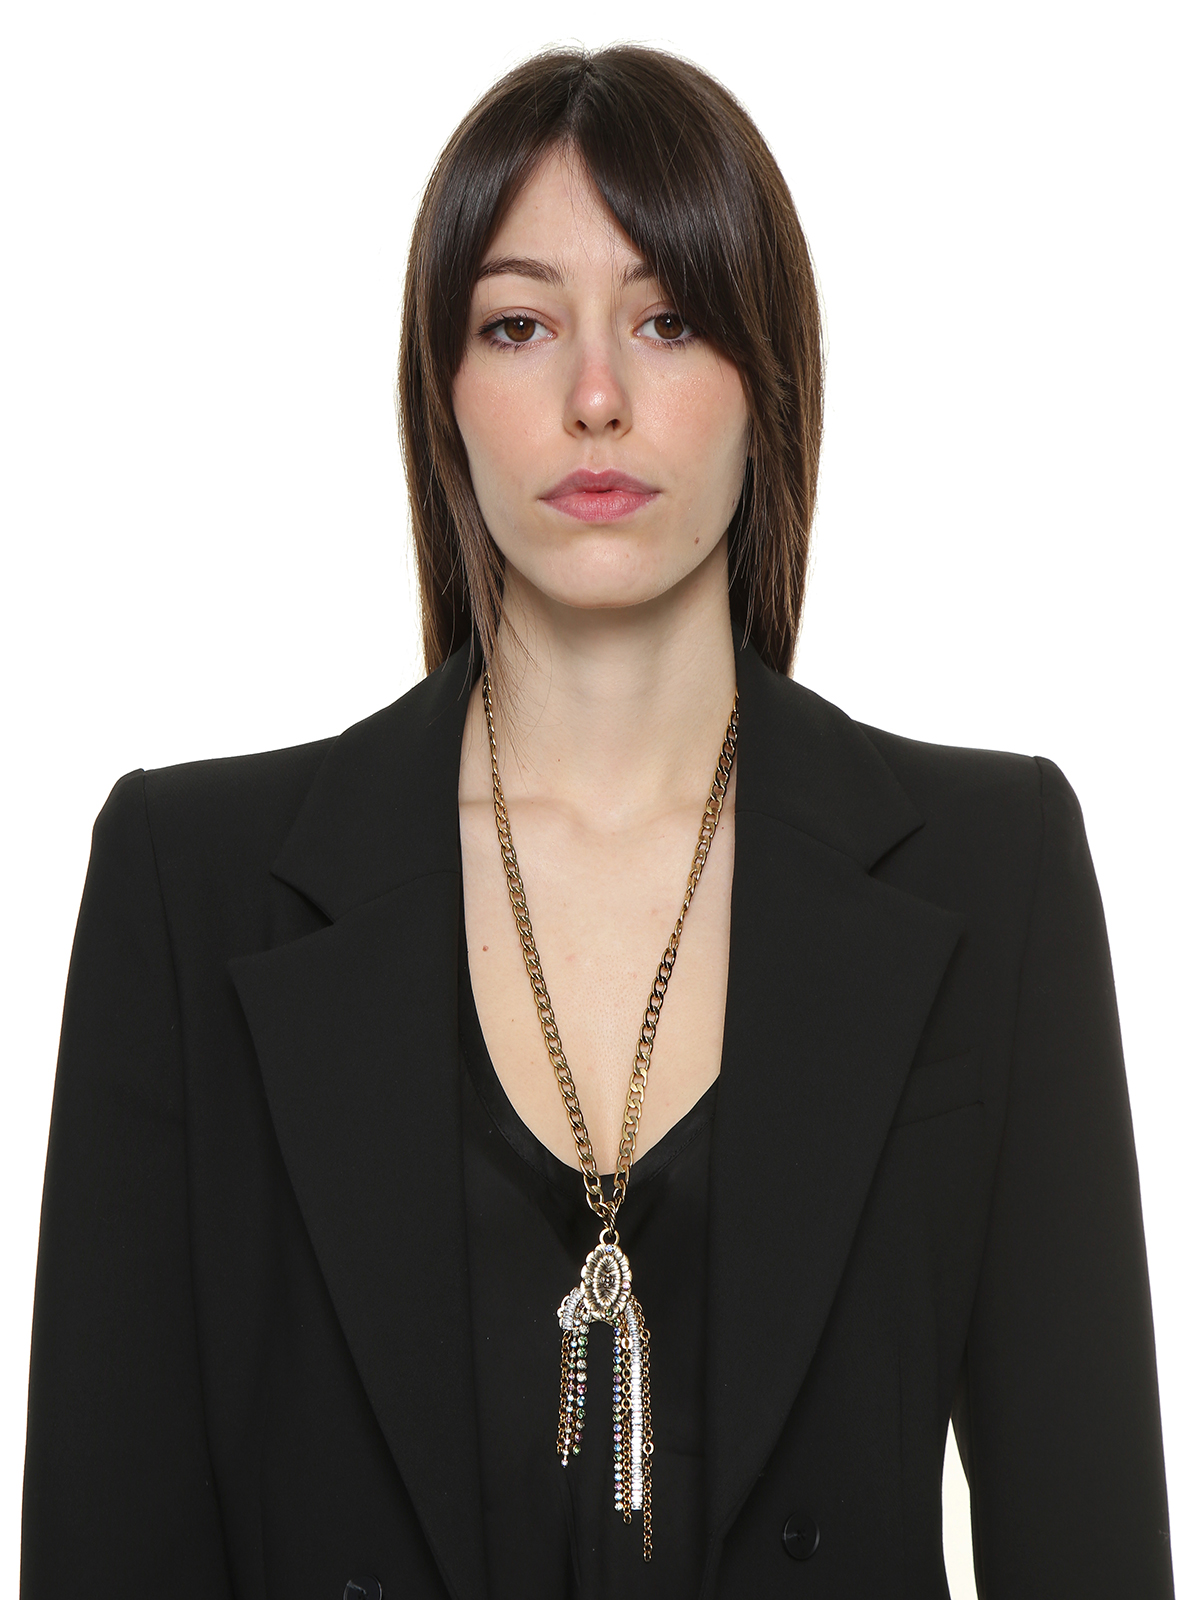 Chain necklace with central flower embellished with stones and chain cascade